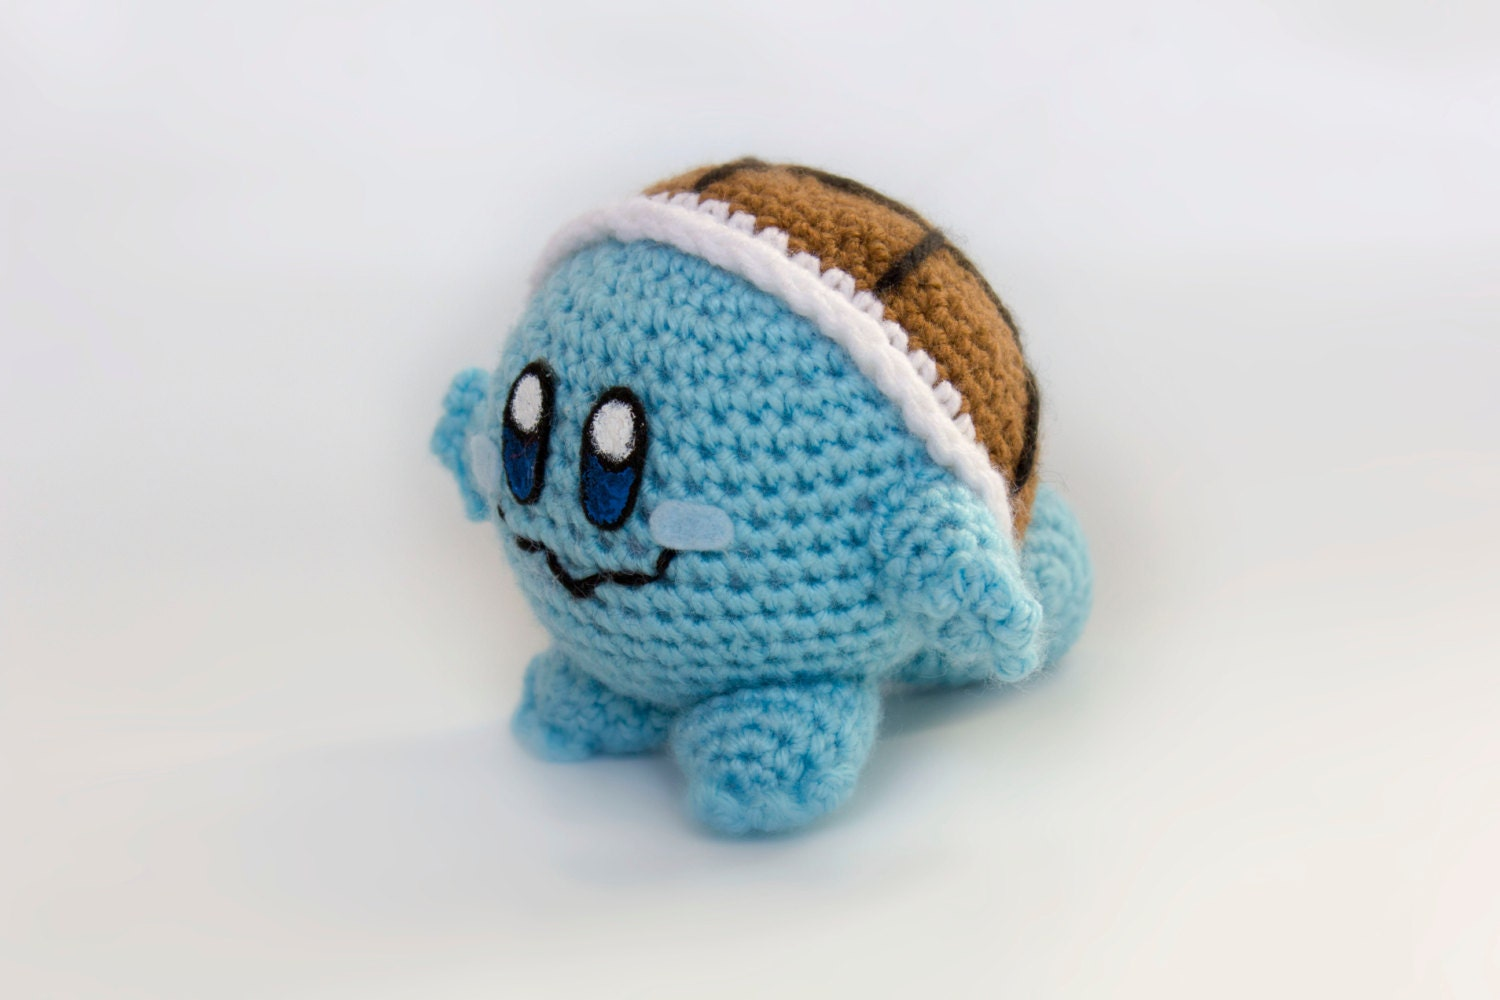 Crochet Patterns Amigurumi Monkey : Crochet Squirtle Kirby Amigurumi Made to Order